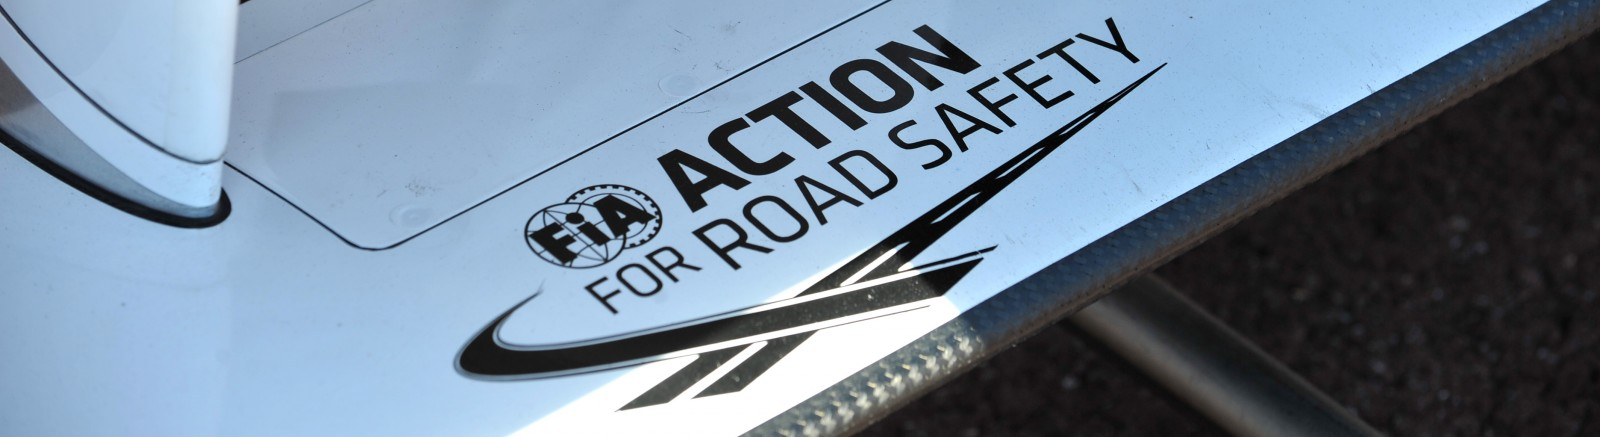 action for road safety